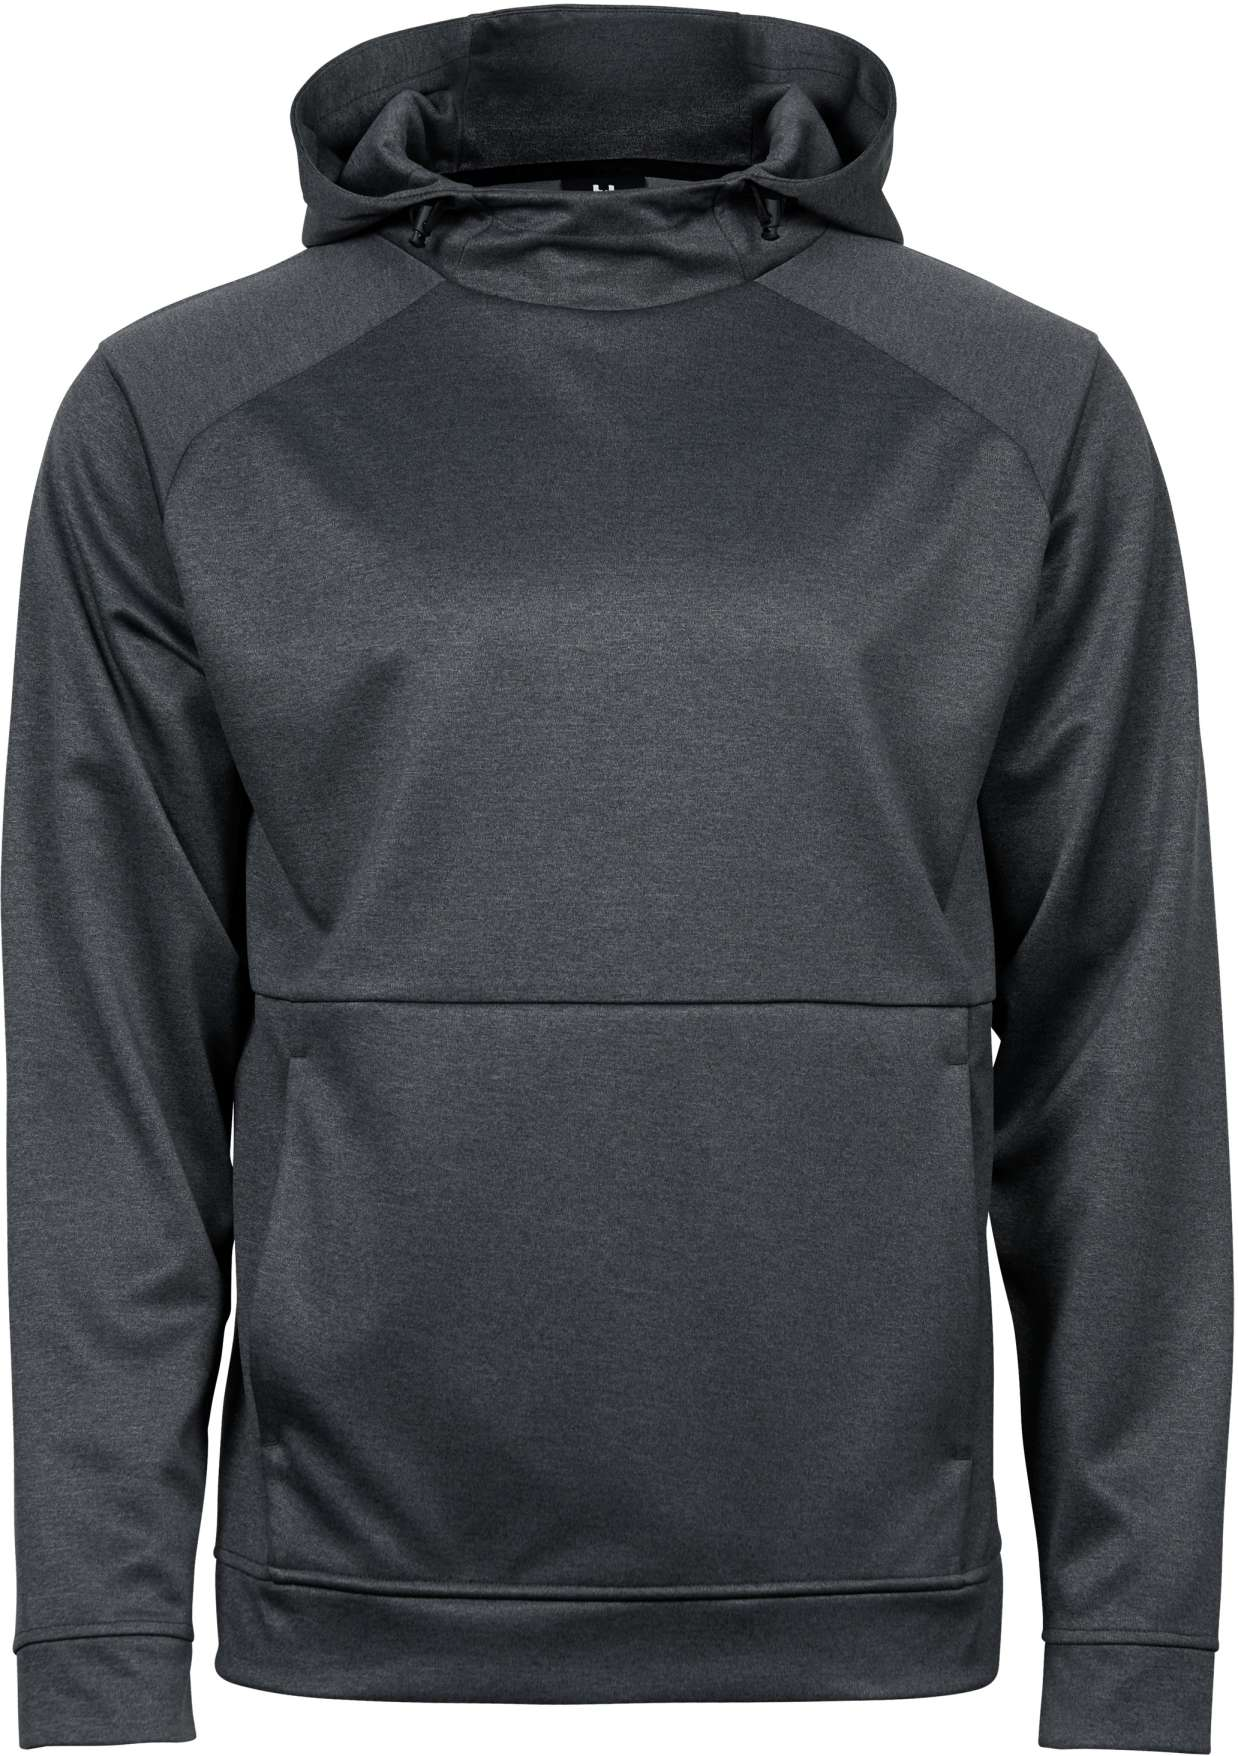 c745716f Tee Jays | 5600 Men's Performance Hooded Sweater -